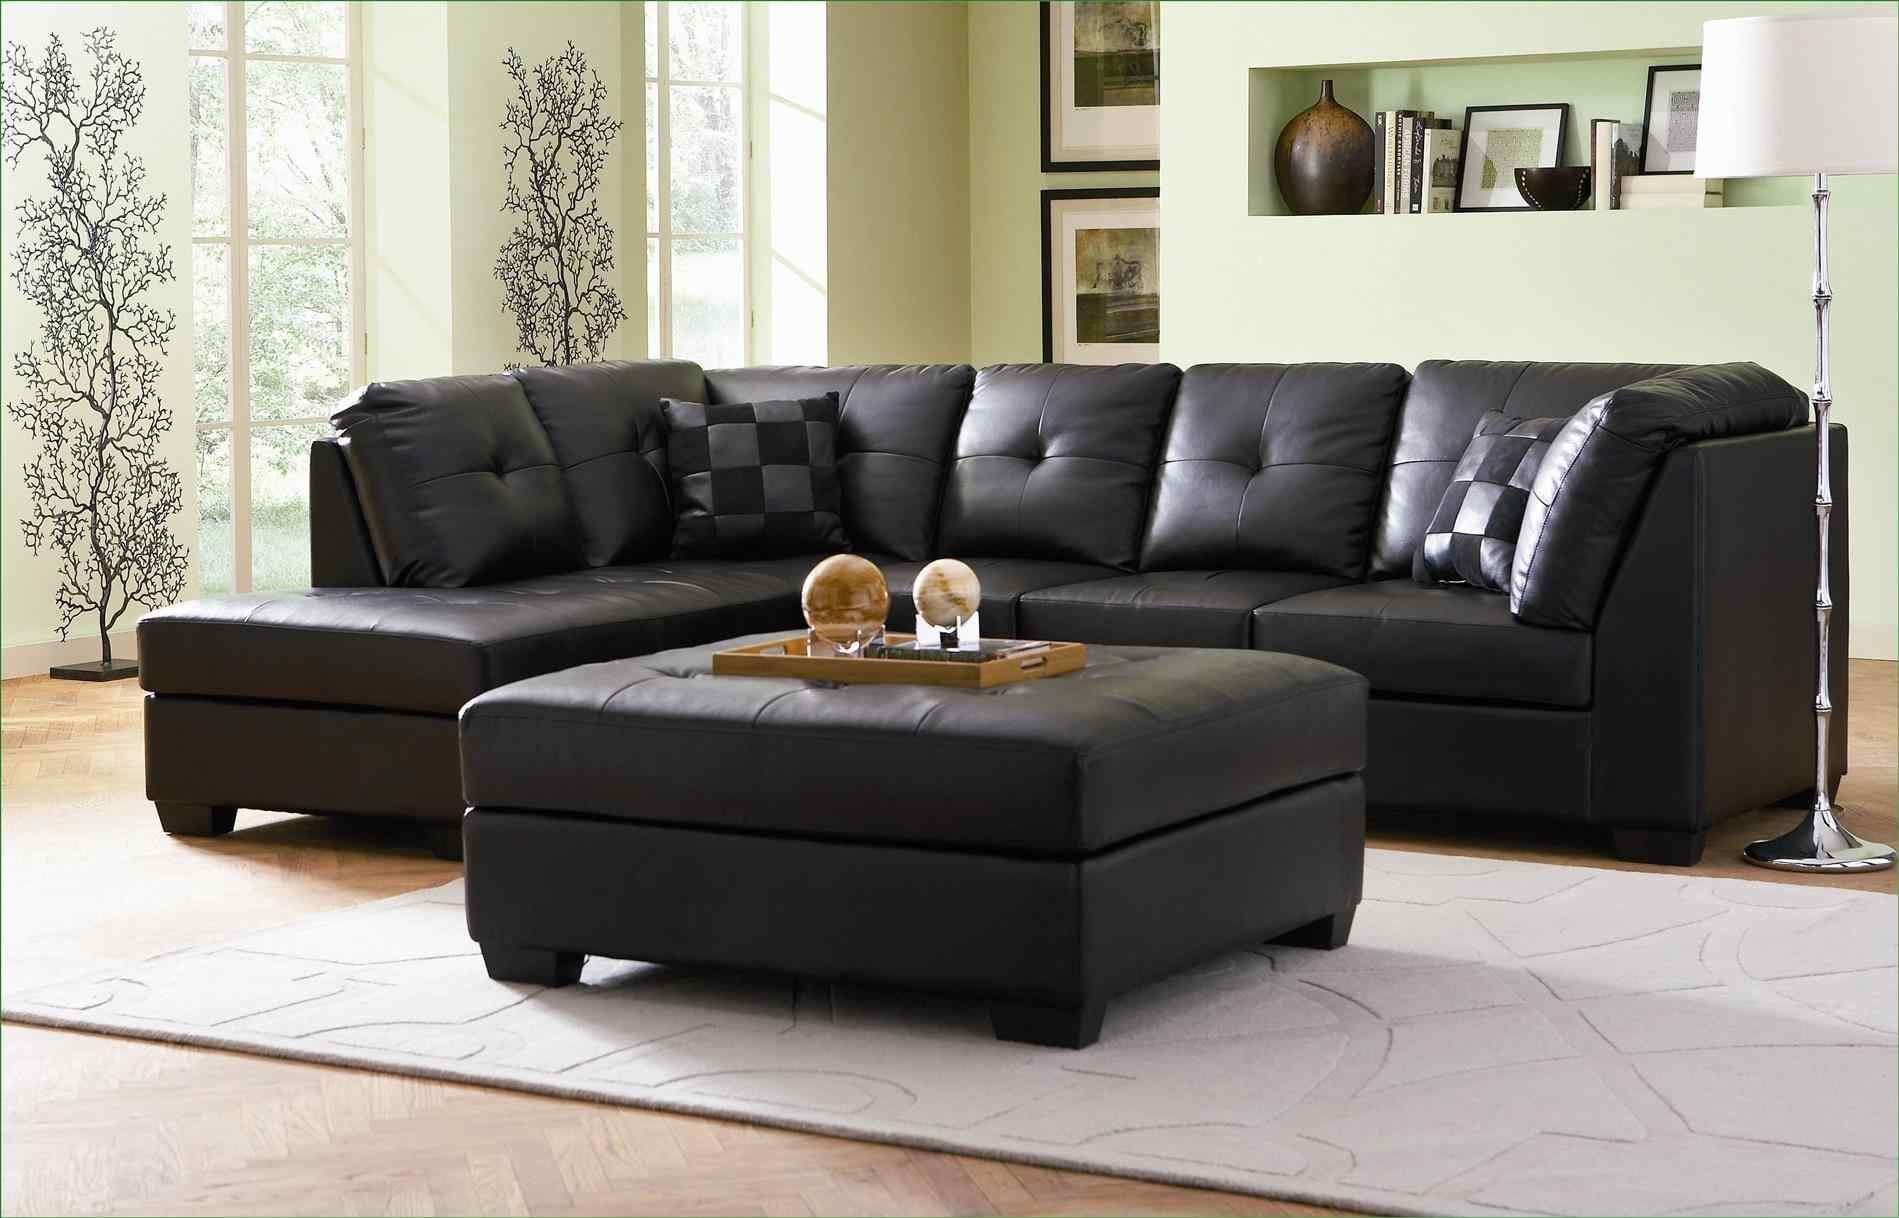 Home Download Media Room Sofa Sectionals Basement Dartpalyer Home